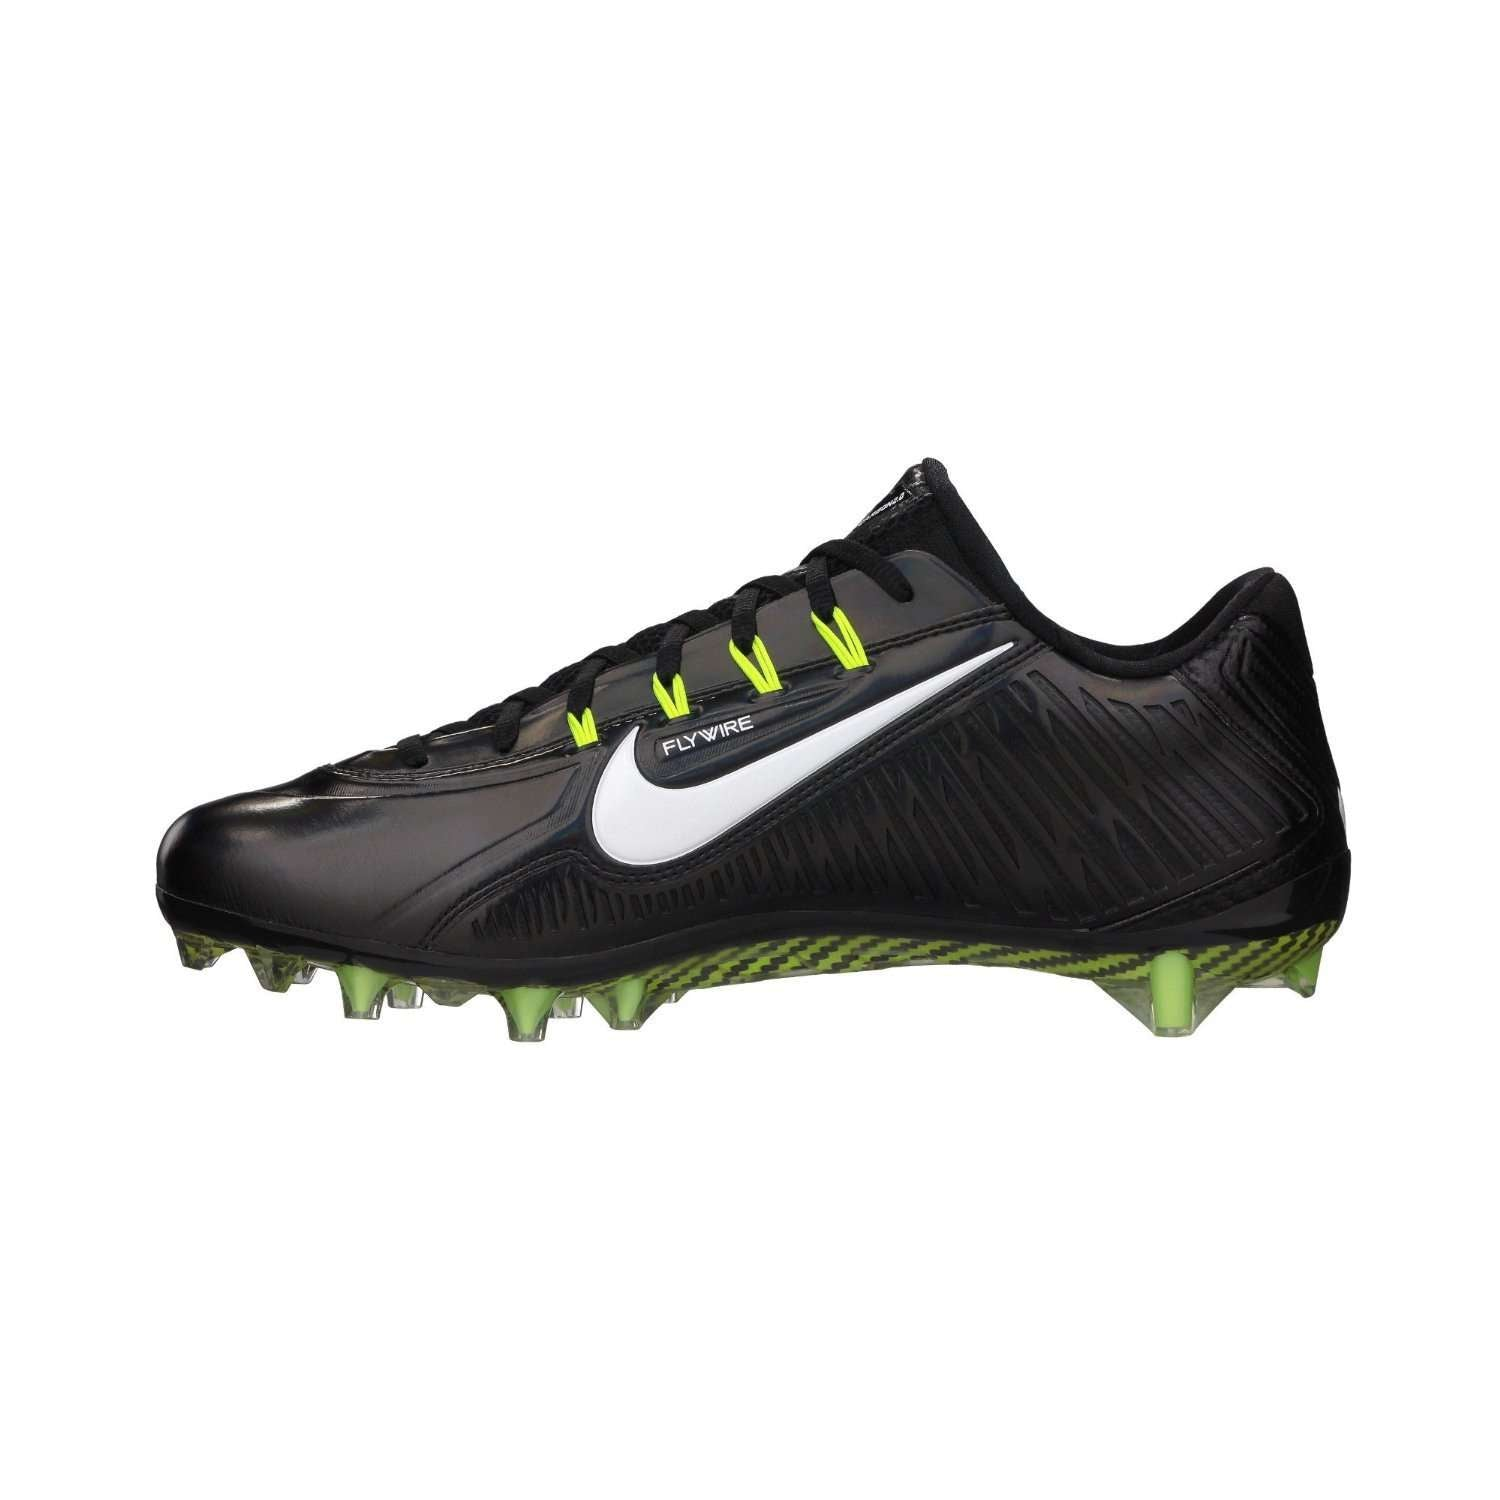 huge discount 30b4b becb5 ... Nike Vapor Carbon Elite TD 2014 Football Cleats - League Outfitters ...